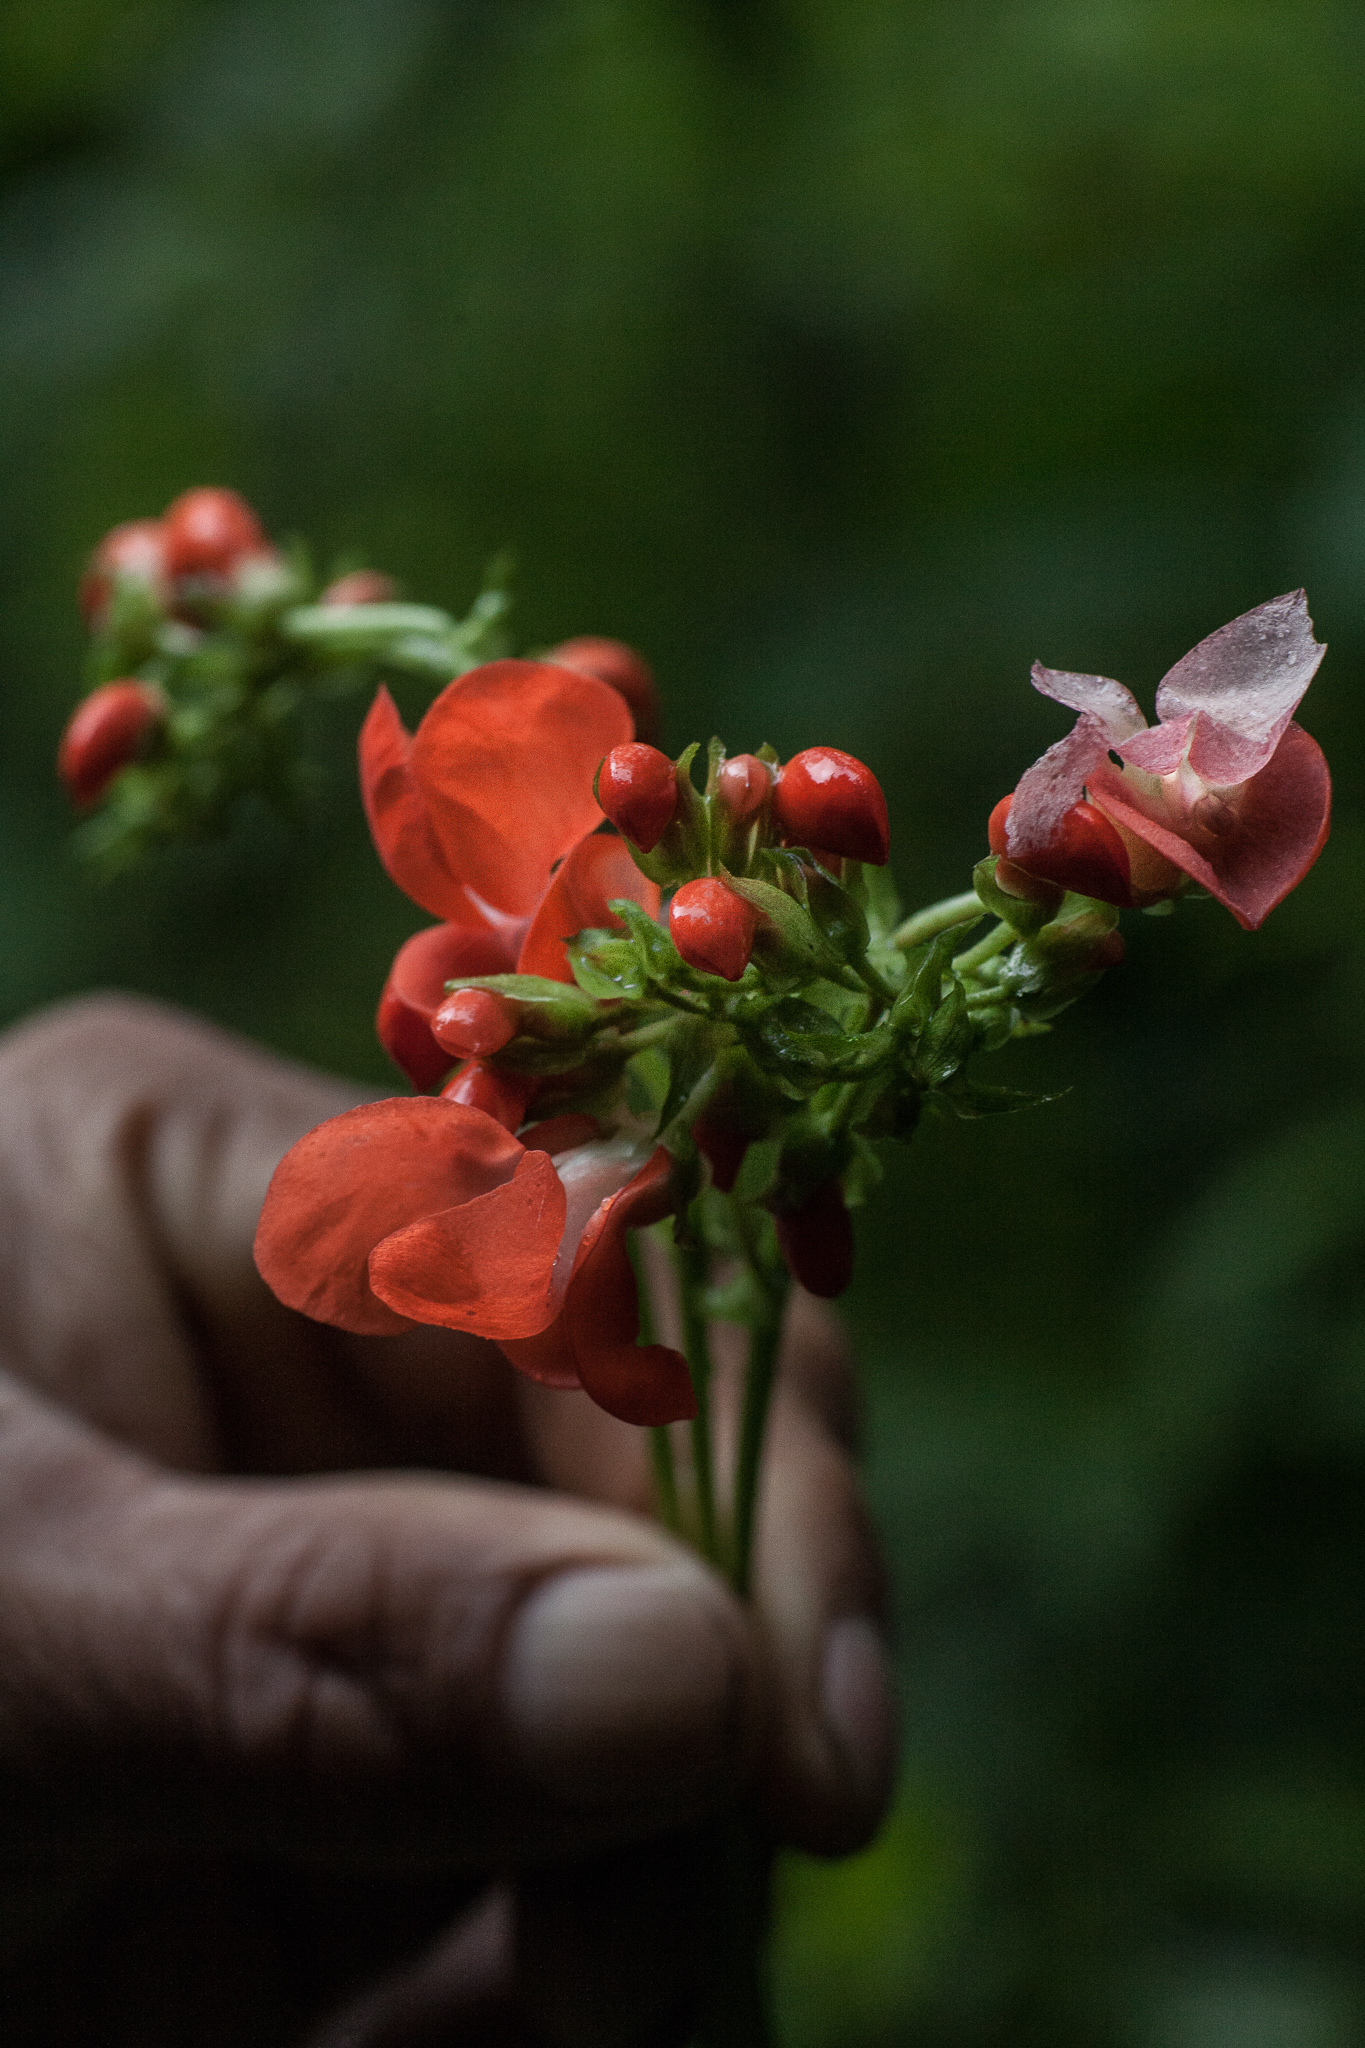 One of the many native cloud-forest plants that locals collect and use as food and medicine.